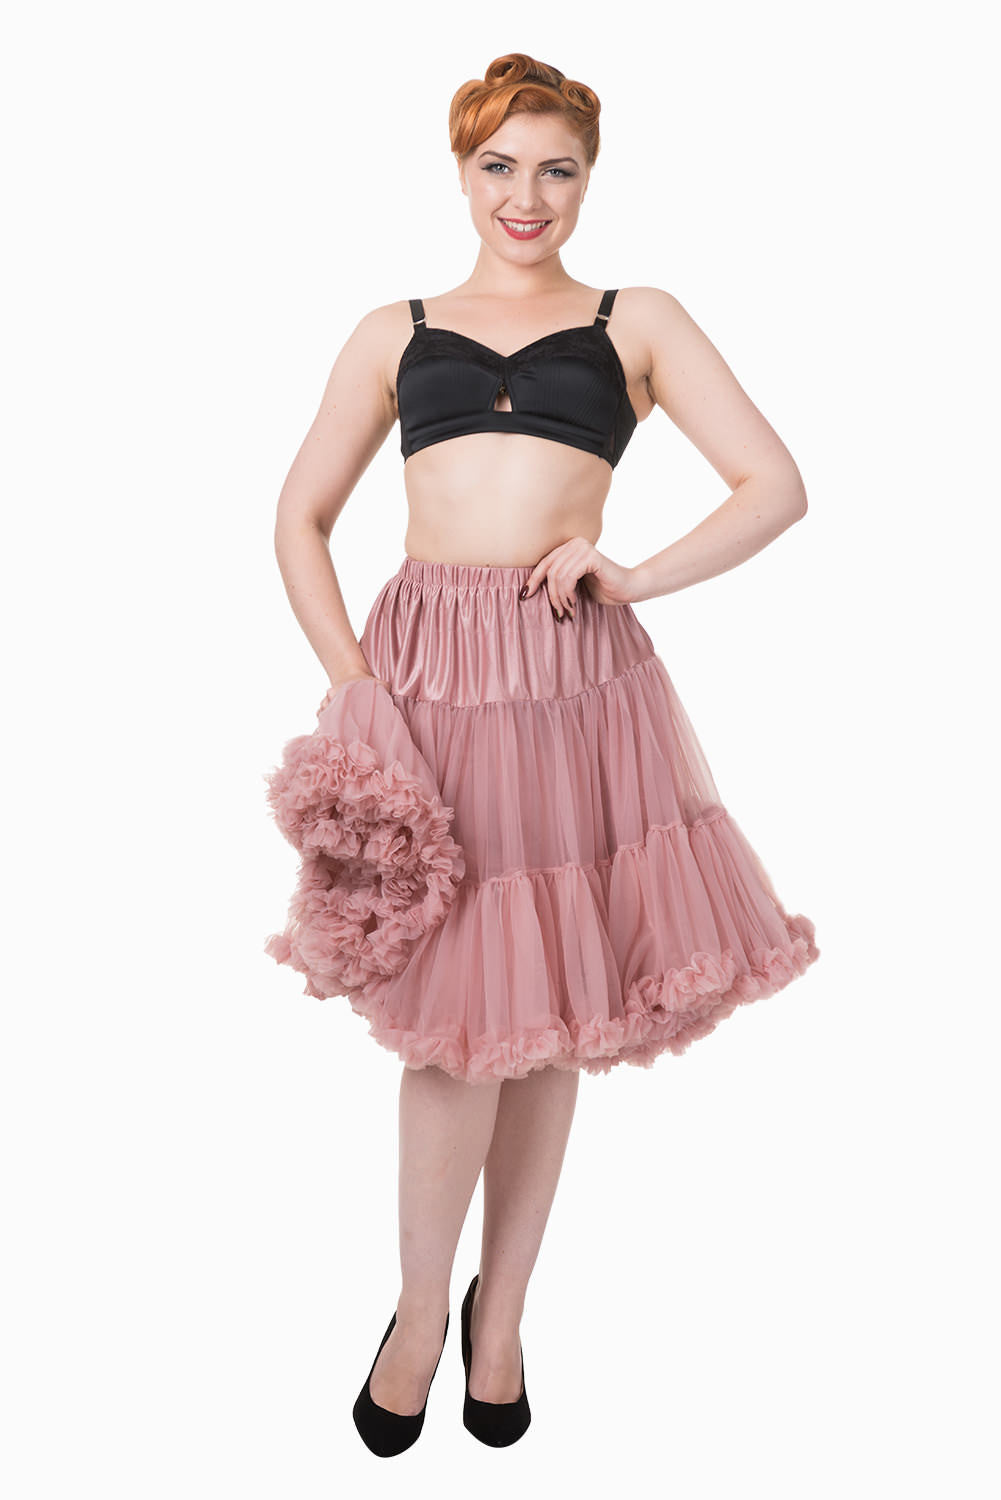 Starlite Petticoat in Dusty Pink - Natasha Marie Clothing